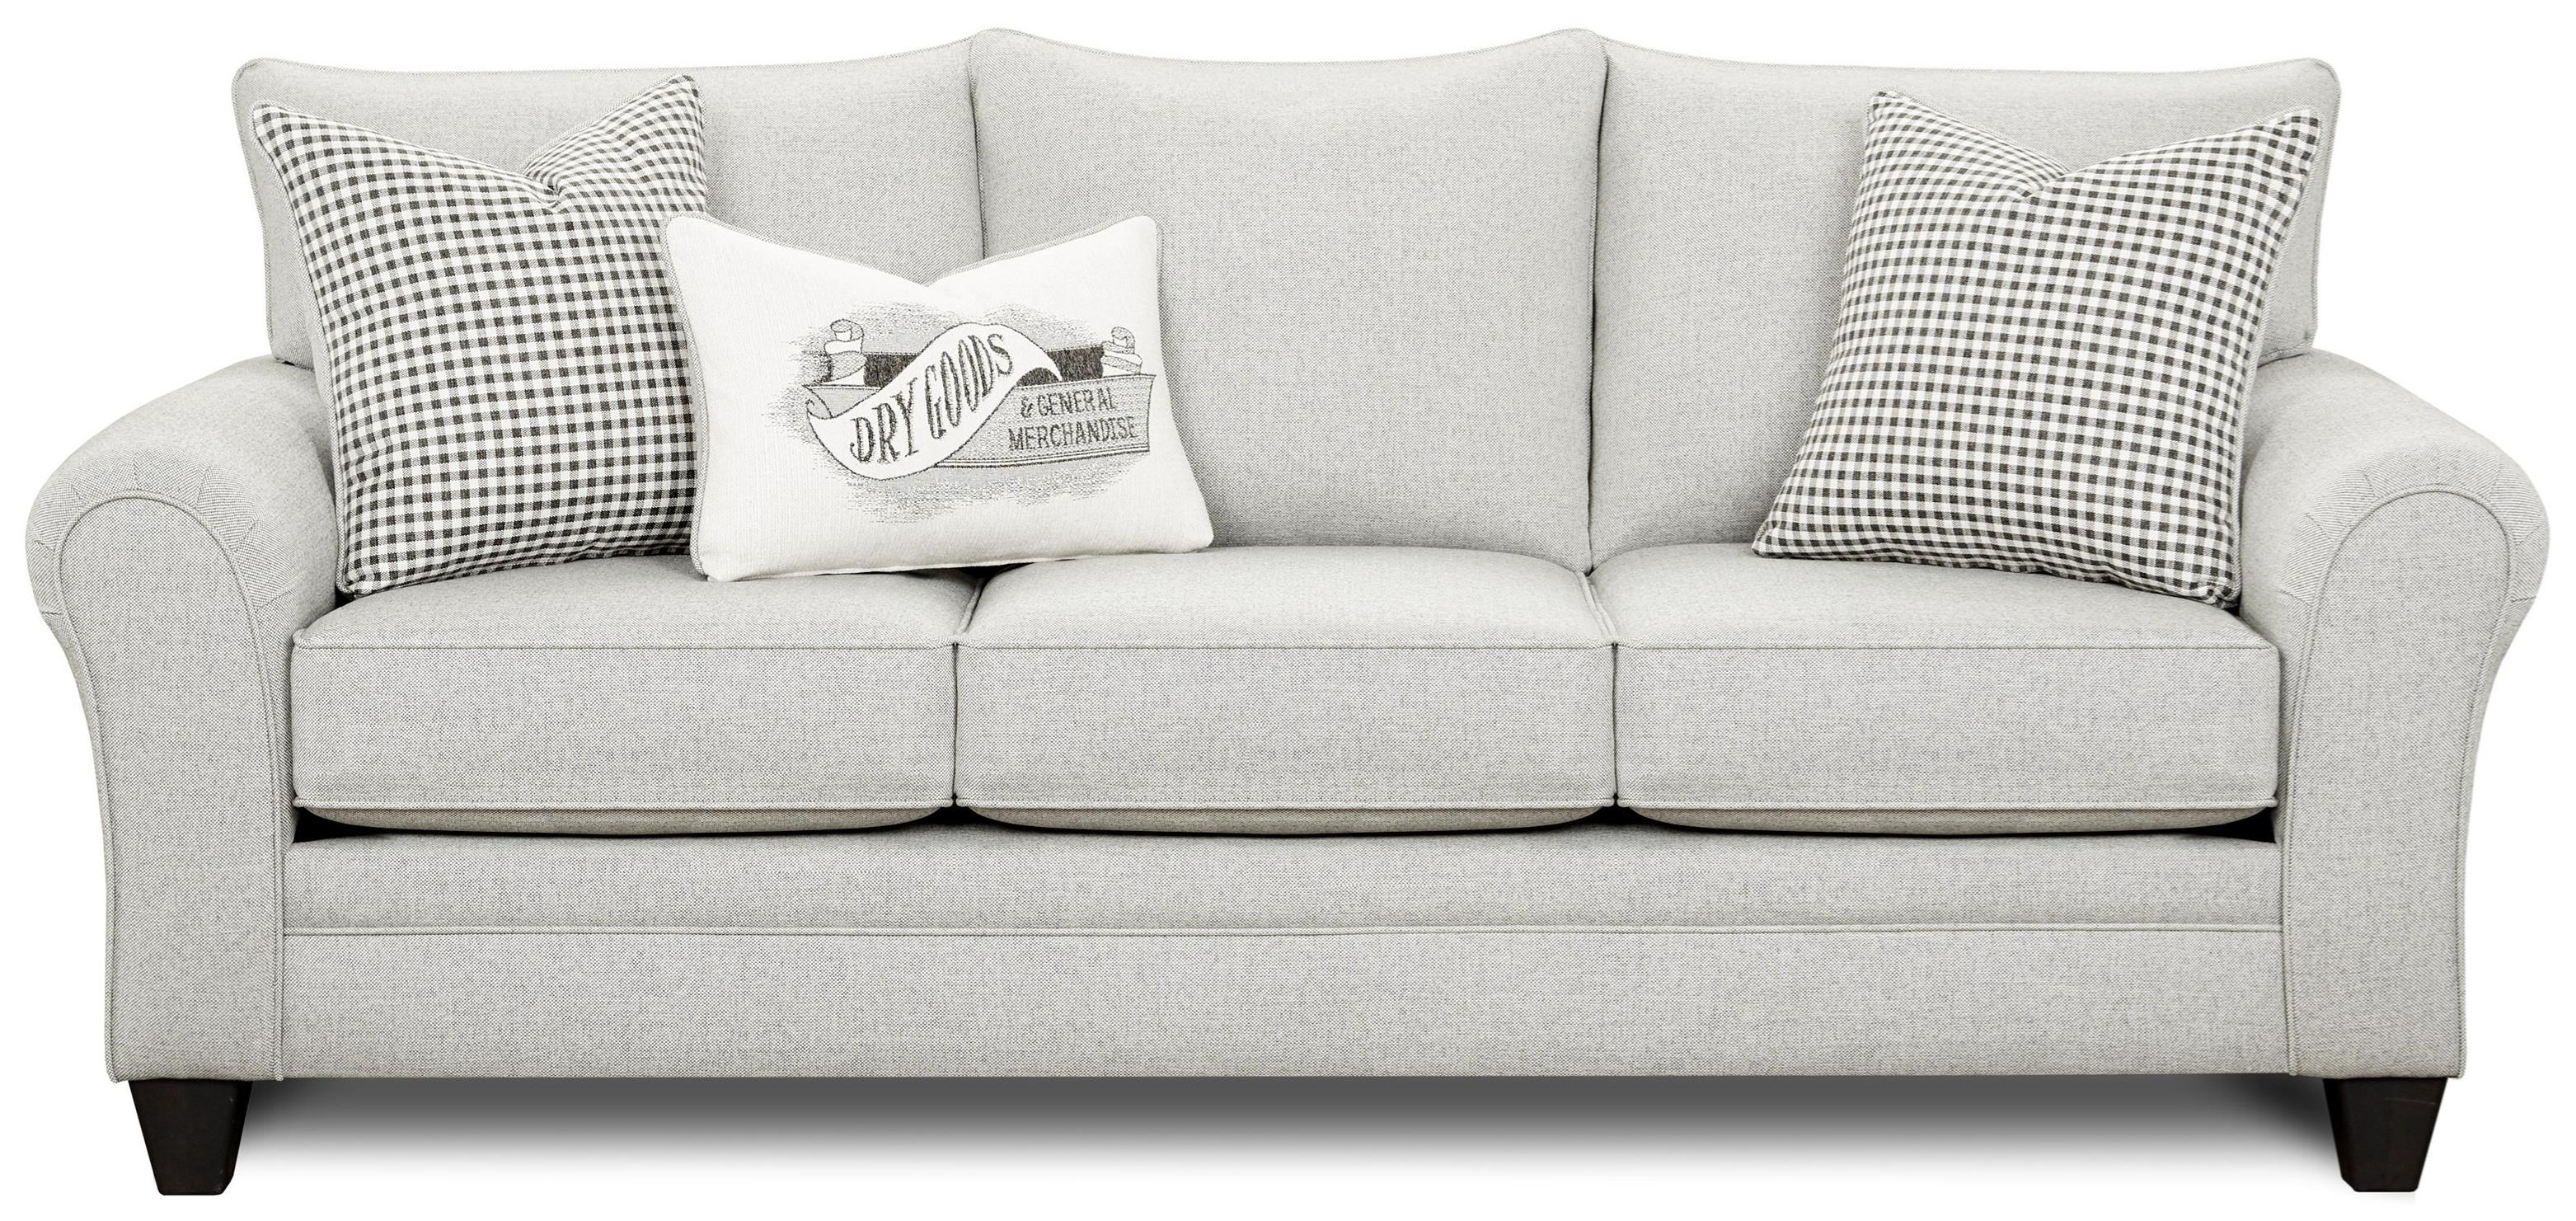 44-00 Sleeper Sofa by Fusion Furniture at Furniture Superstore - Rochester, MN